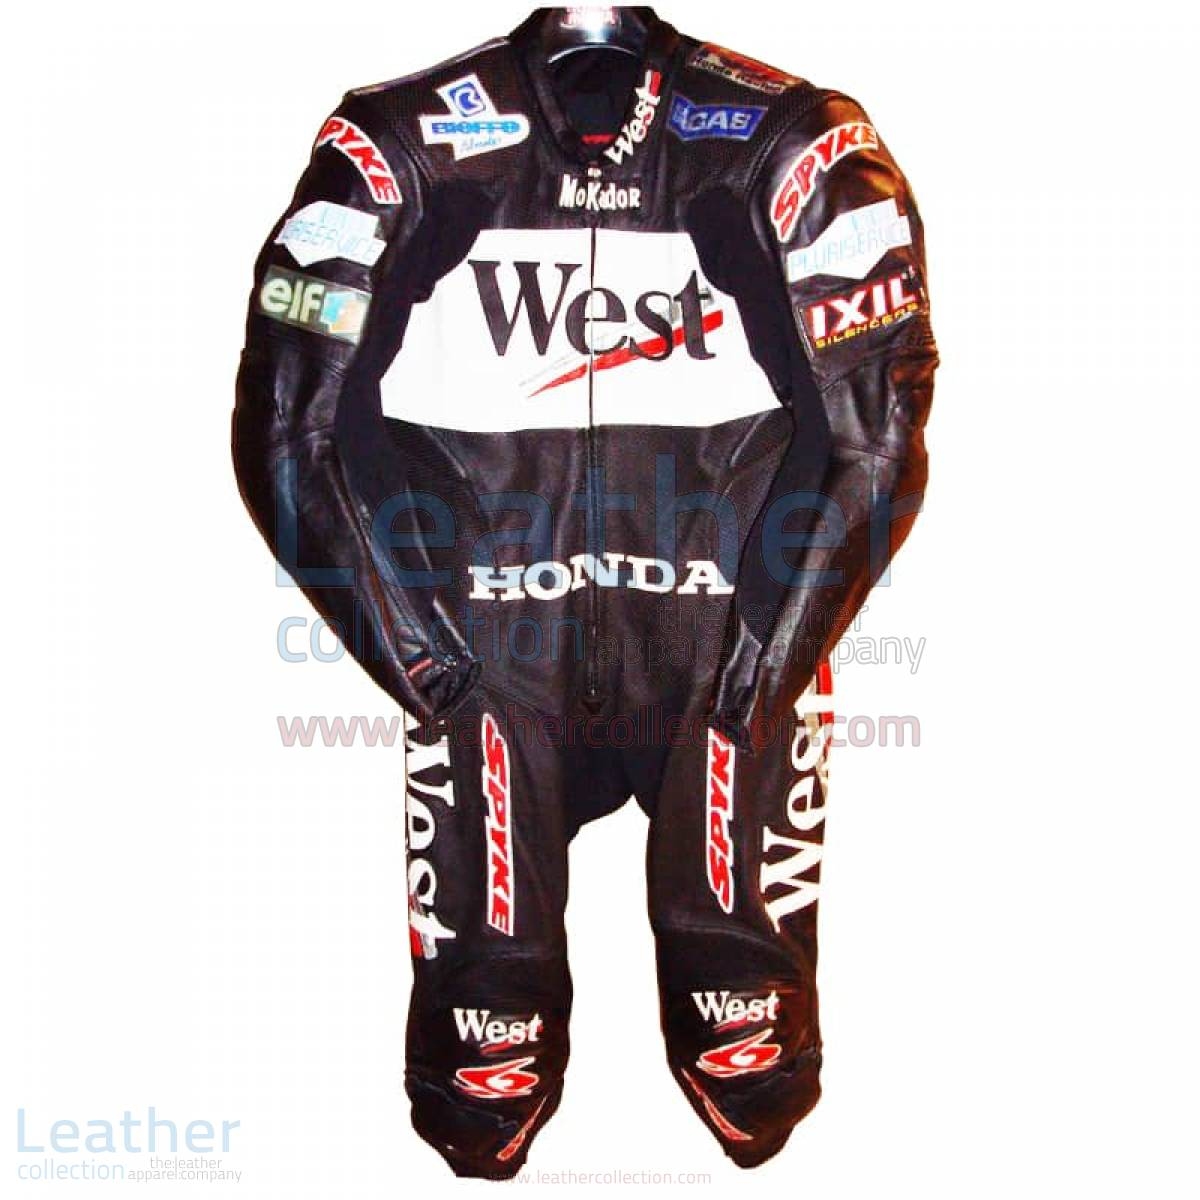 Loris Capirossi Honda GP 2001 Motorcycle Leathers – Honda Suit